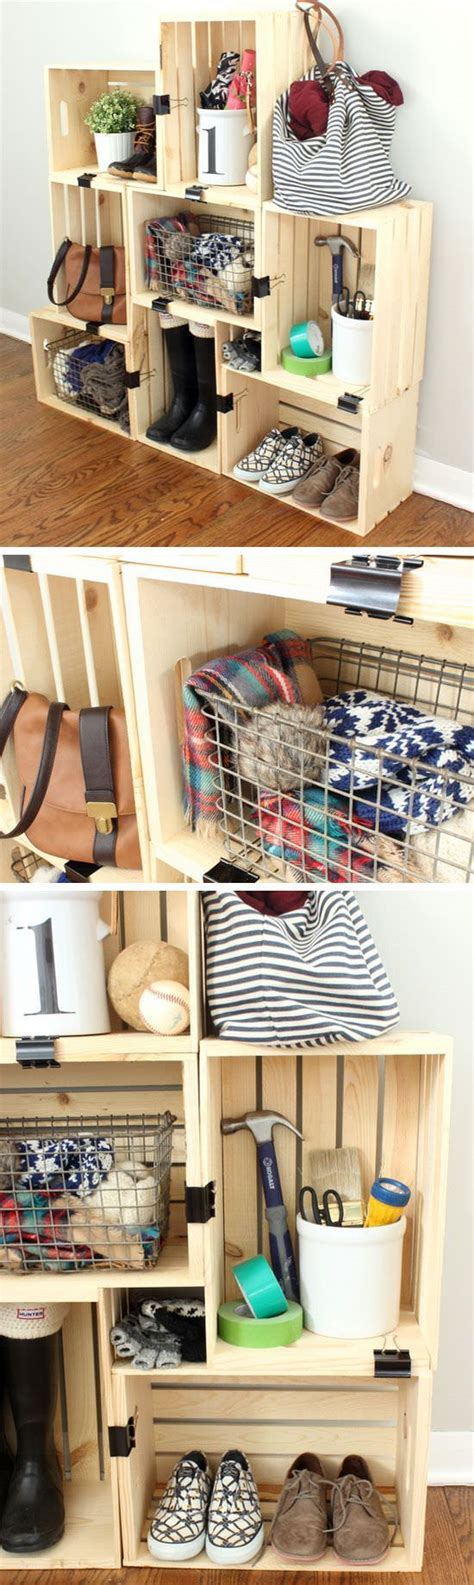 home organizing must haves simple made pretty 20 genius small apartment decortaing ideas organization